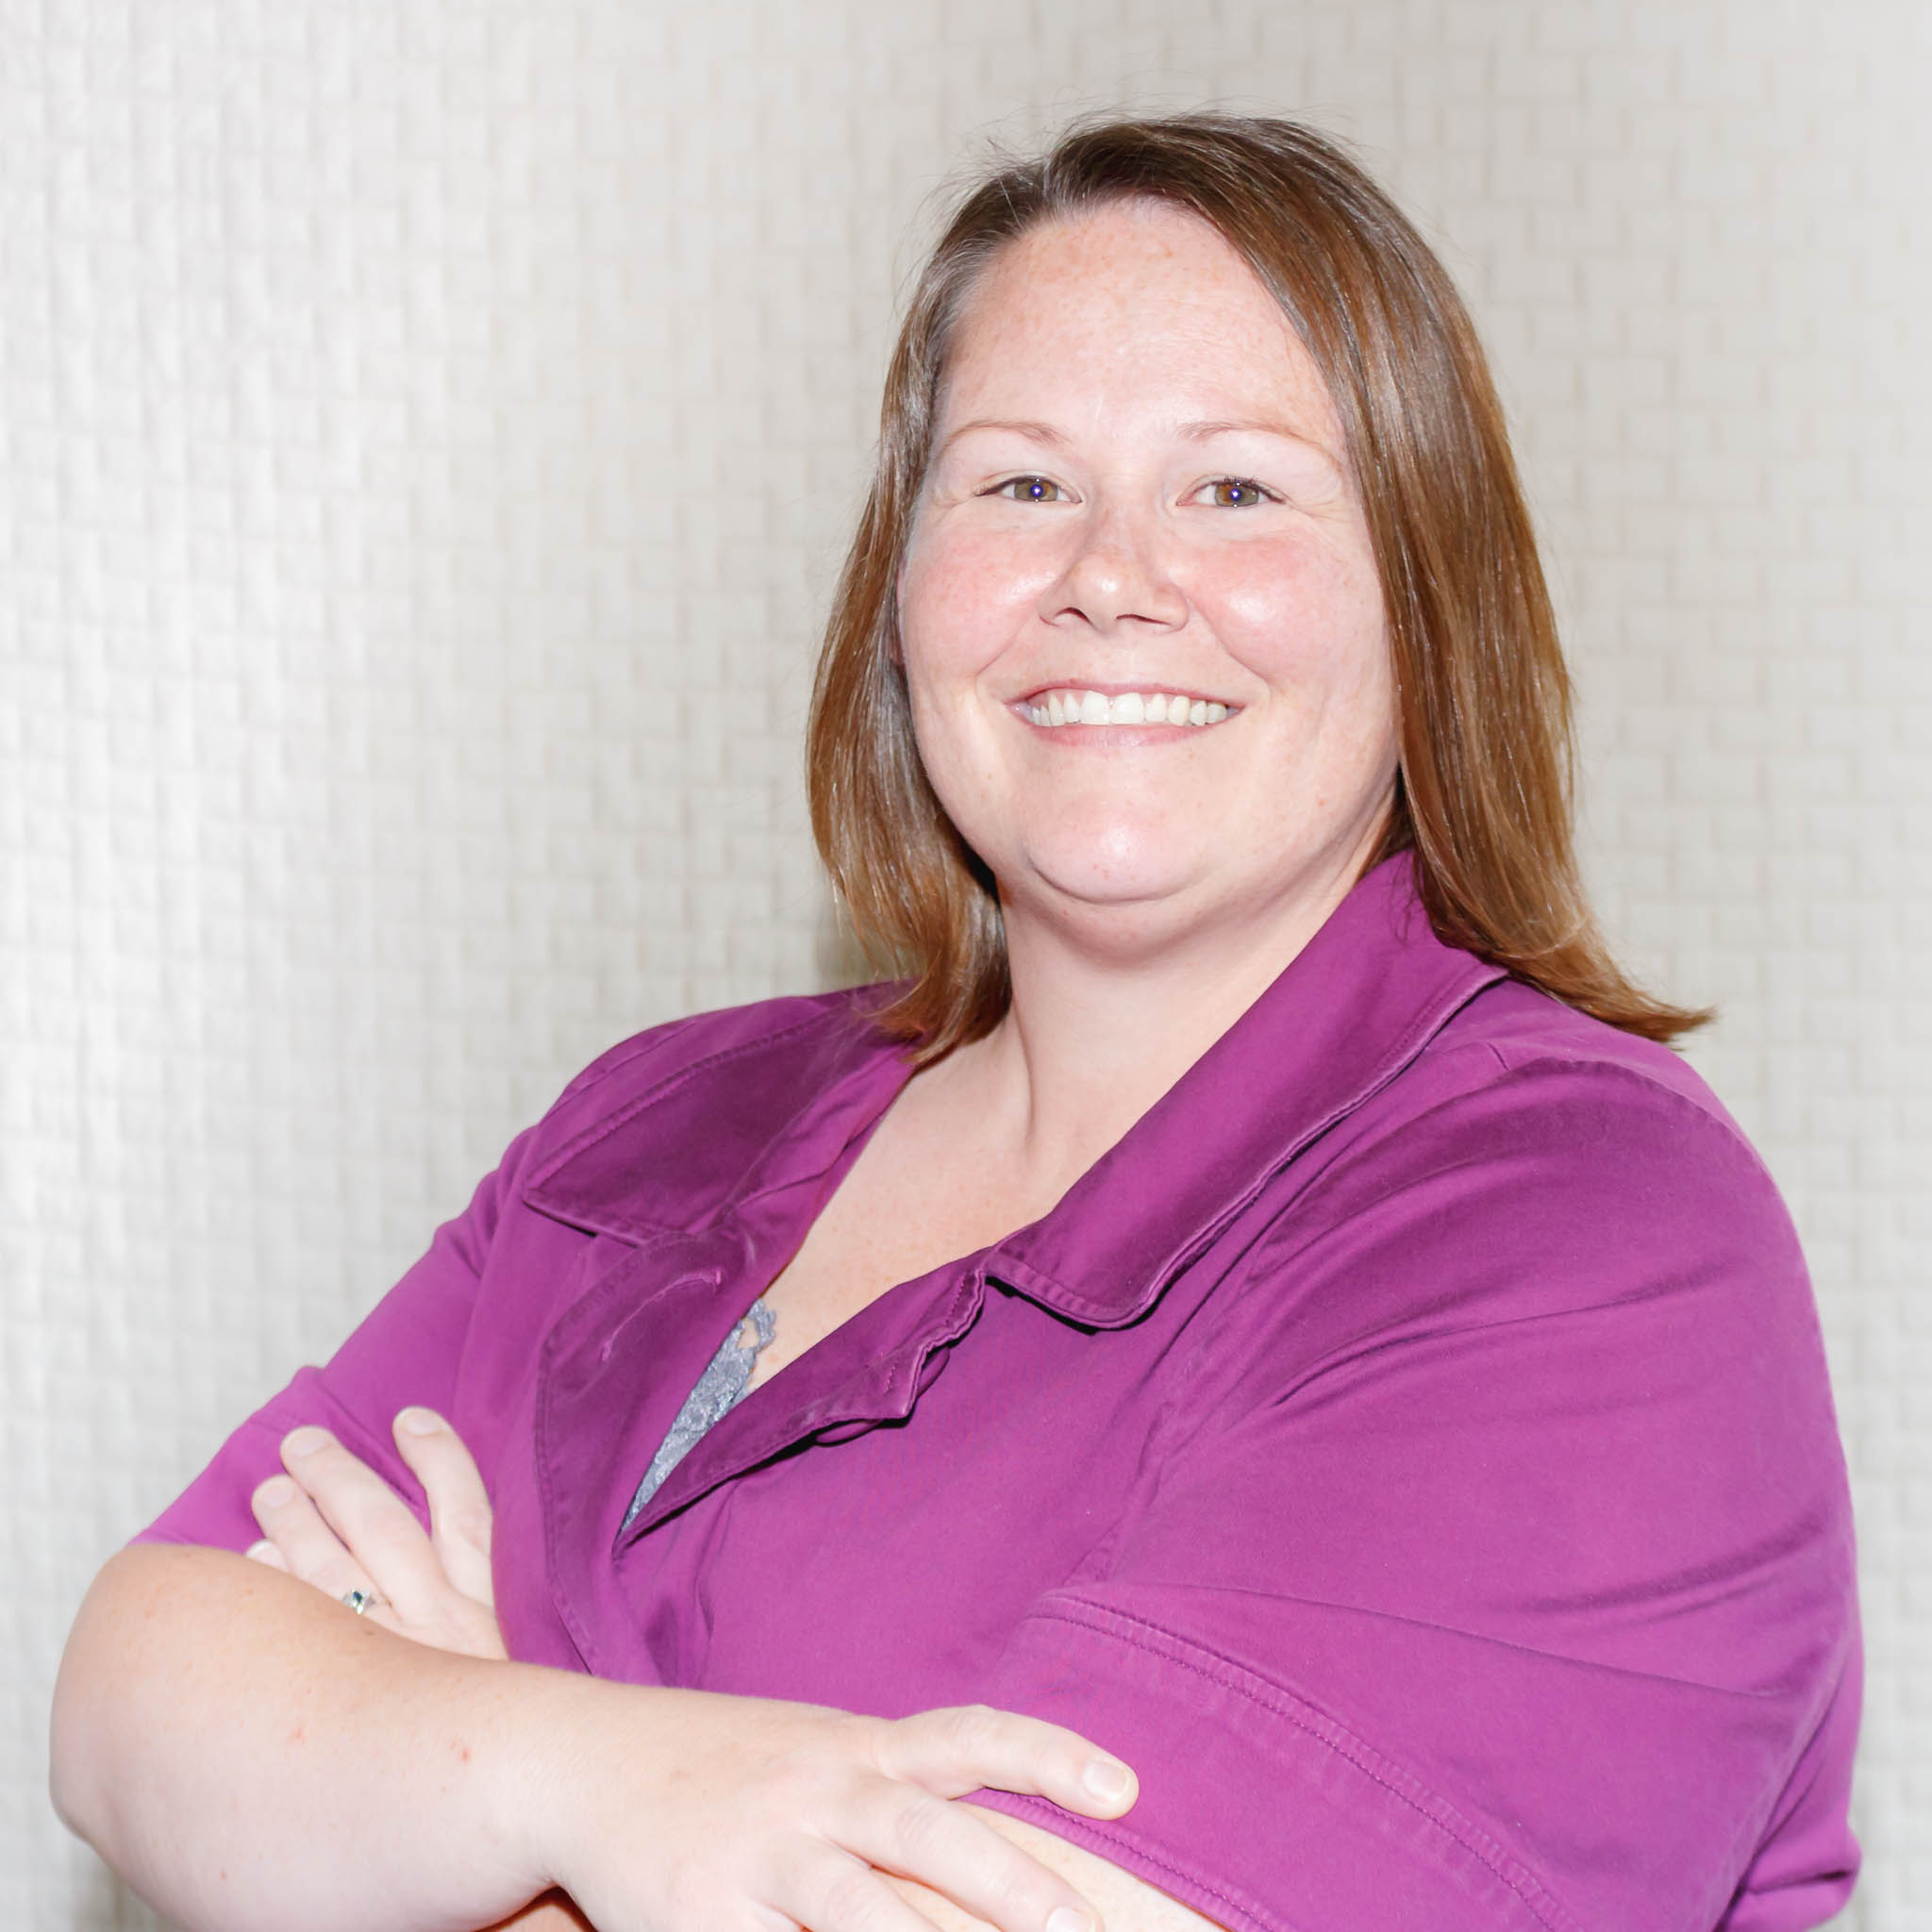 Rachel Henry, PE - Project Manager